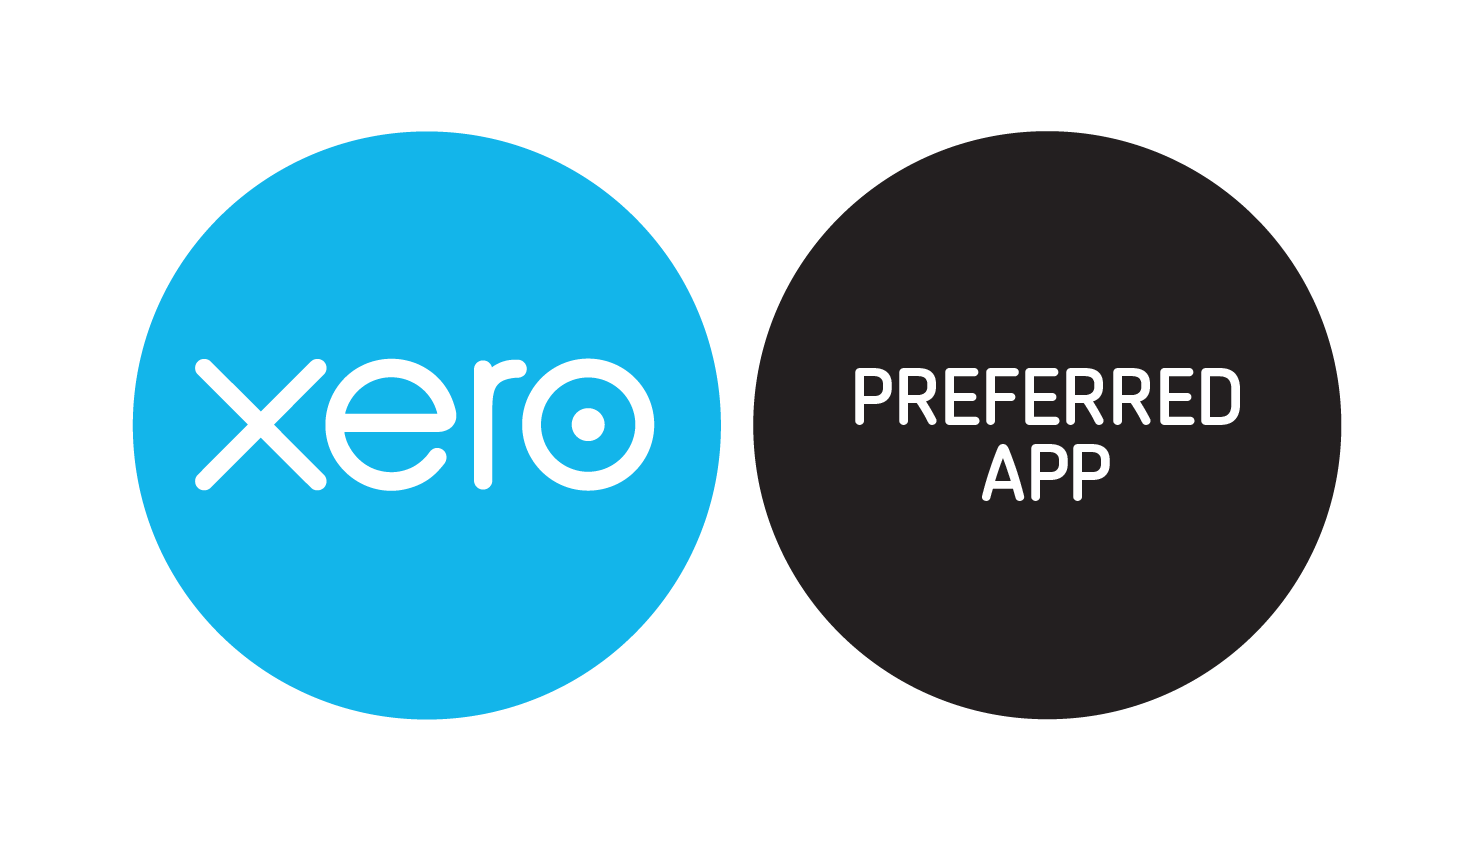 ServiceM8 Xero Preferred App